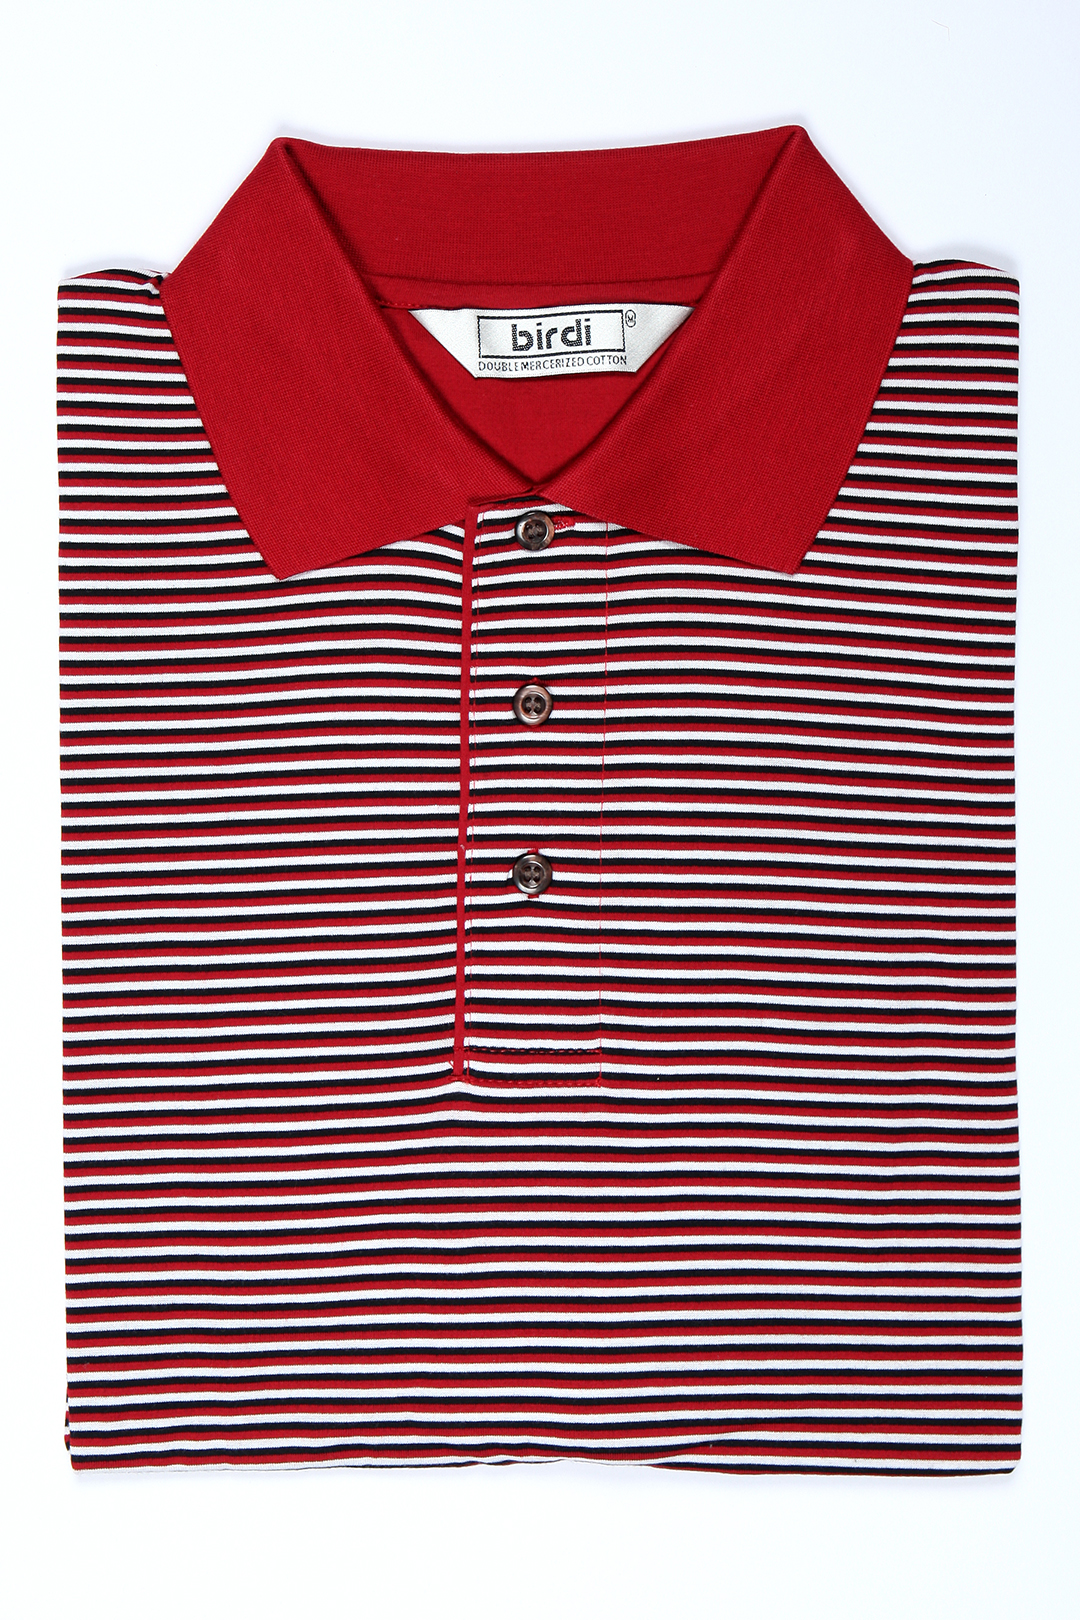 red--black--white-men's-double-mercerized-golf-shirt